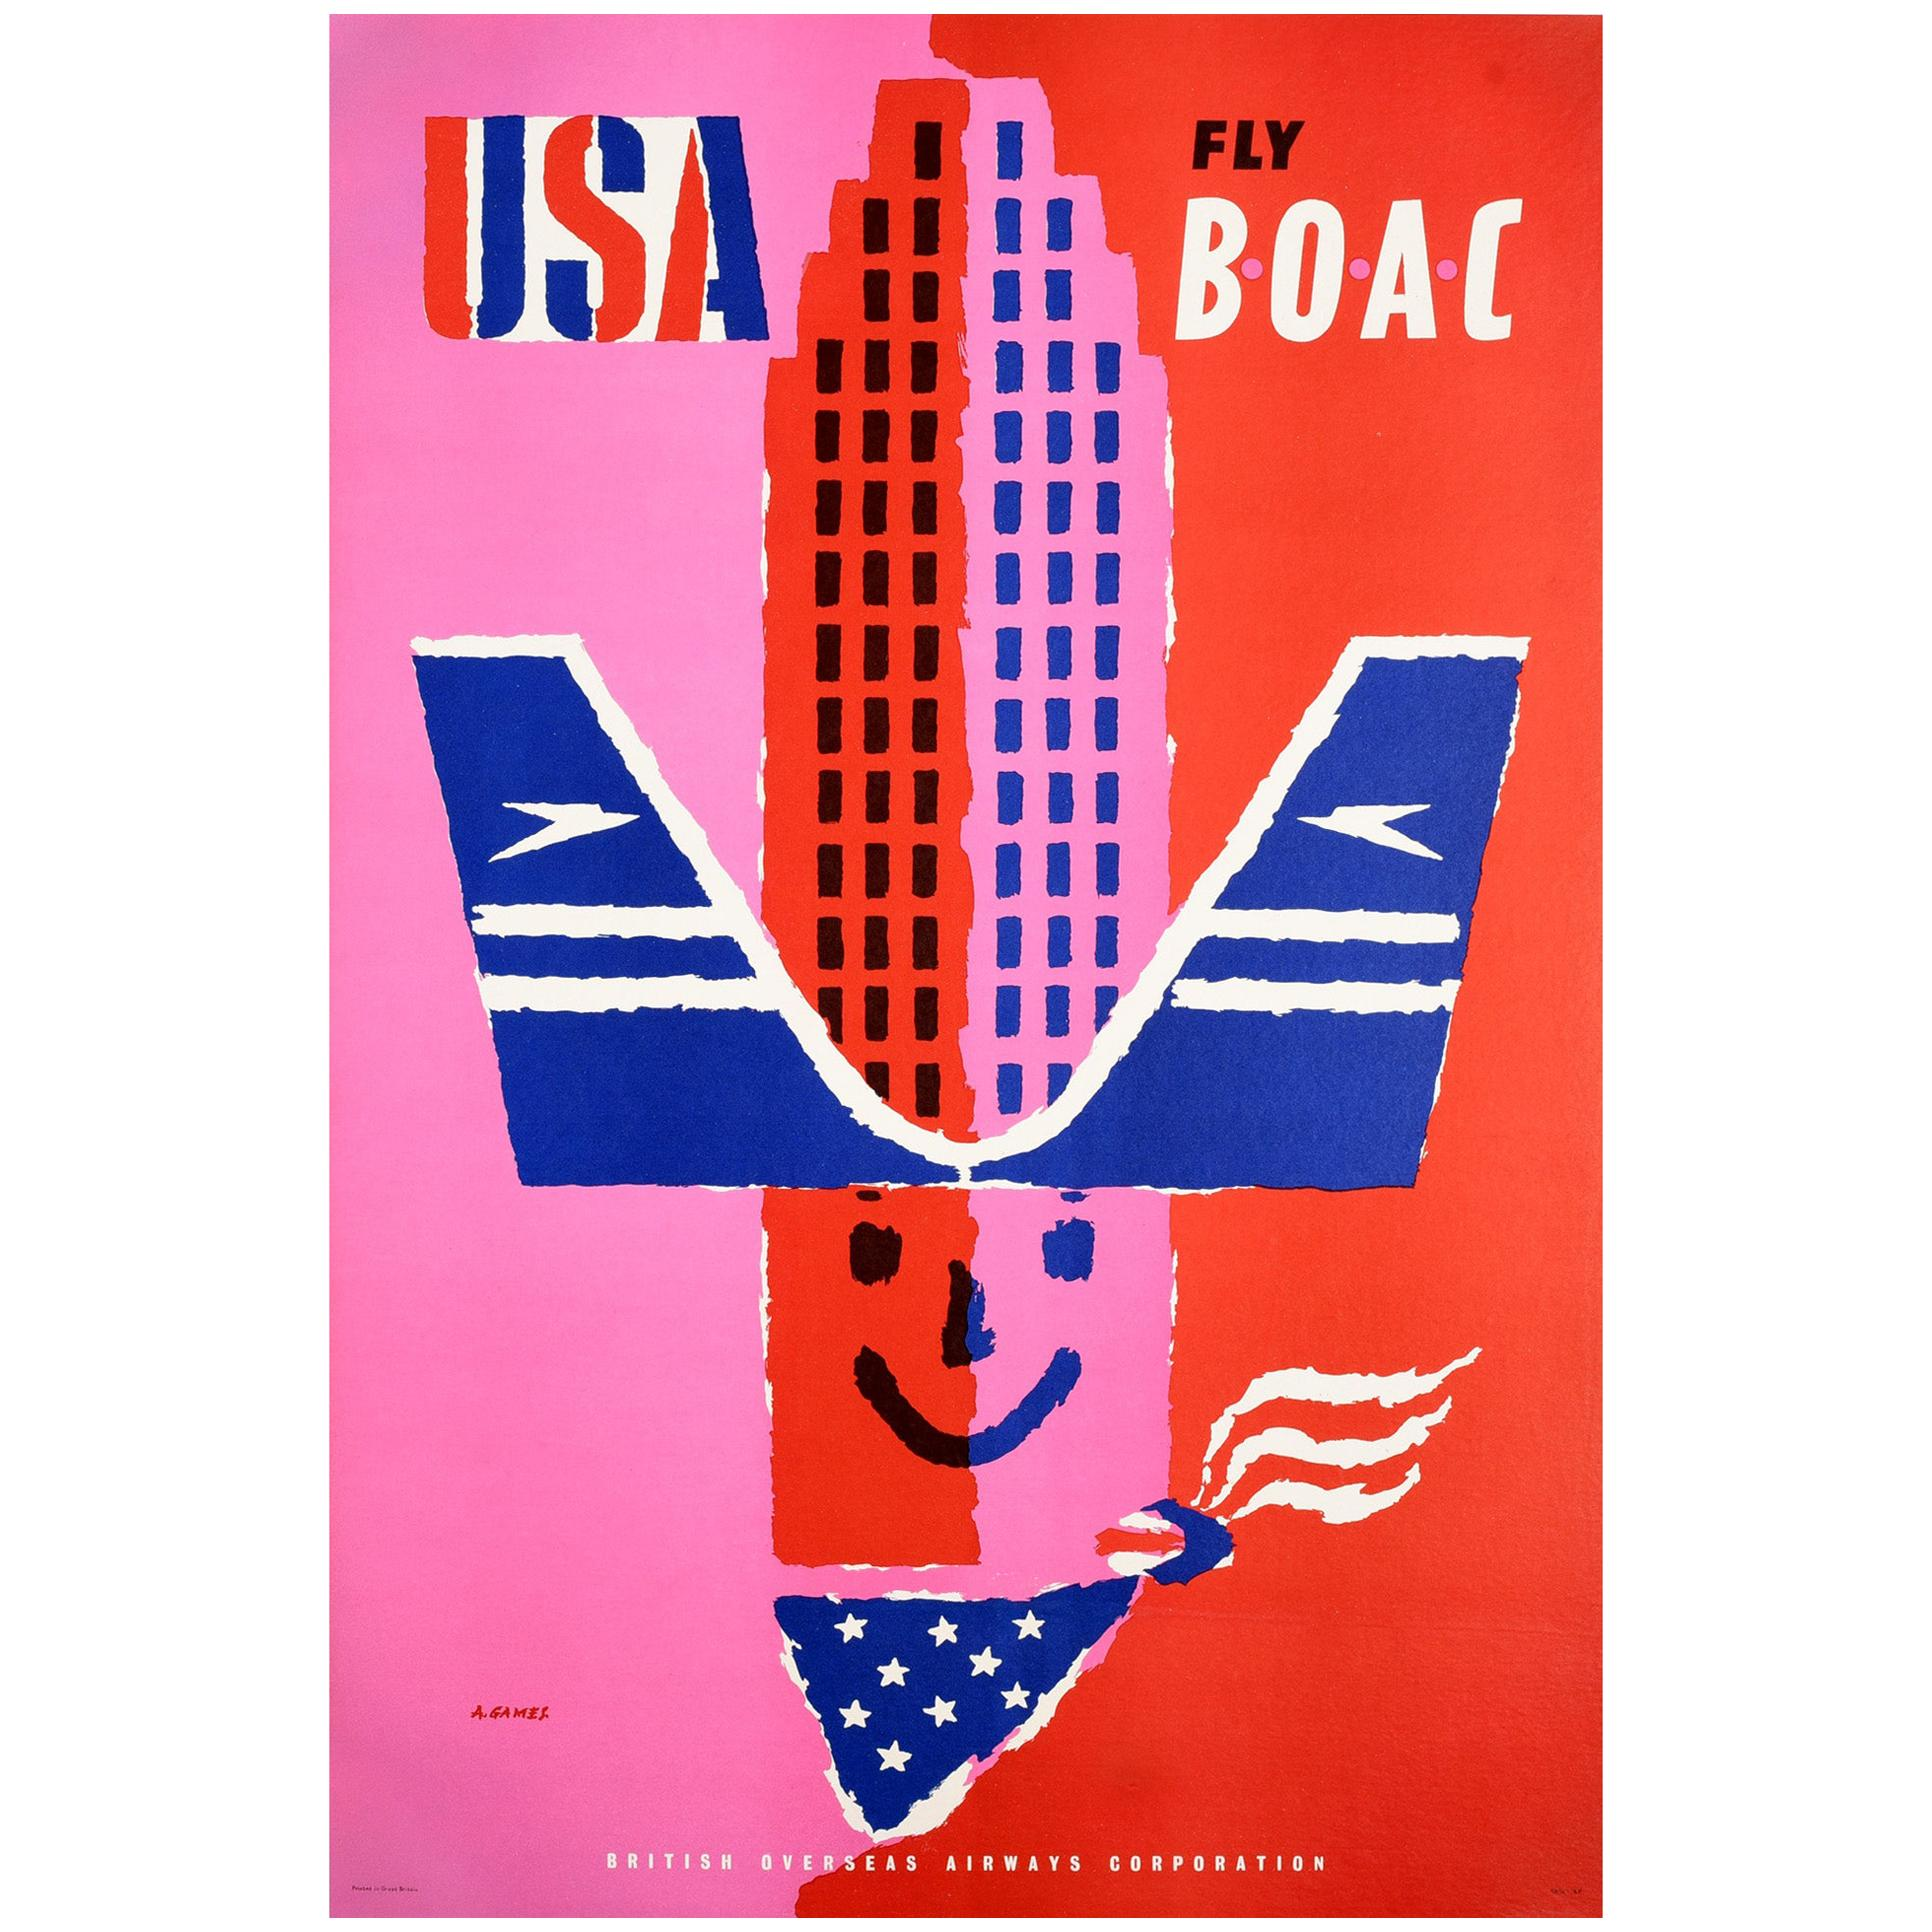 Original Vintage Poster USA Fly BOAC Airline Travel America Midcentury Design